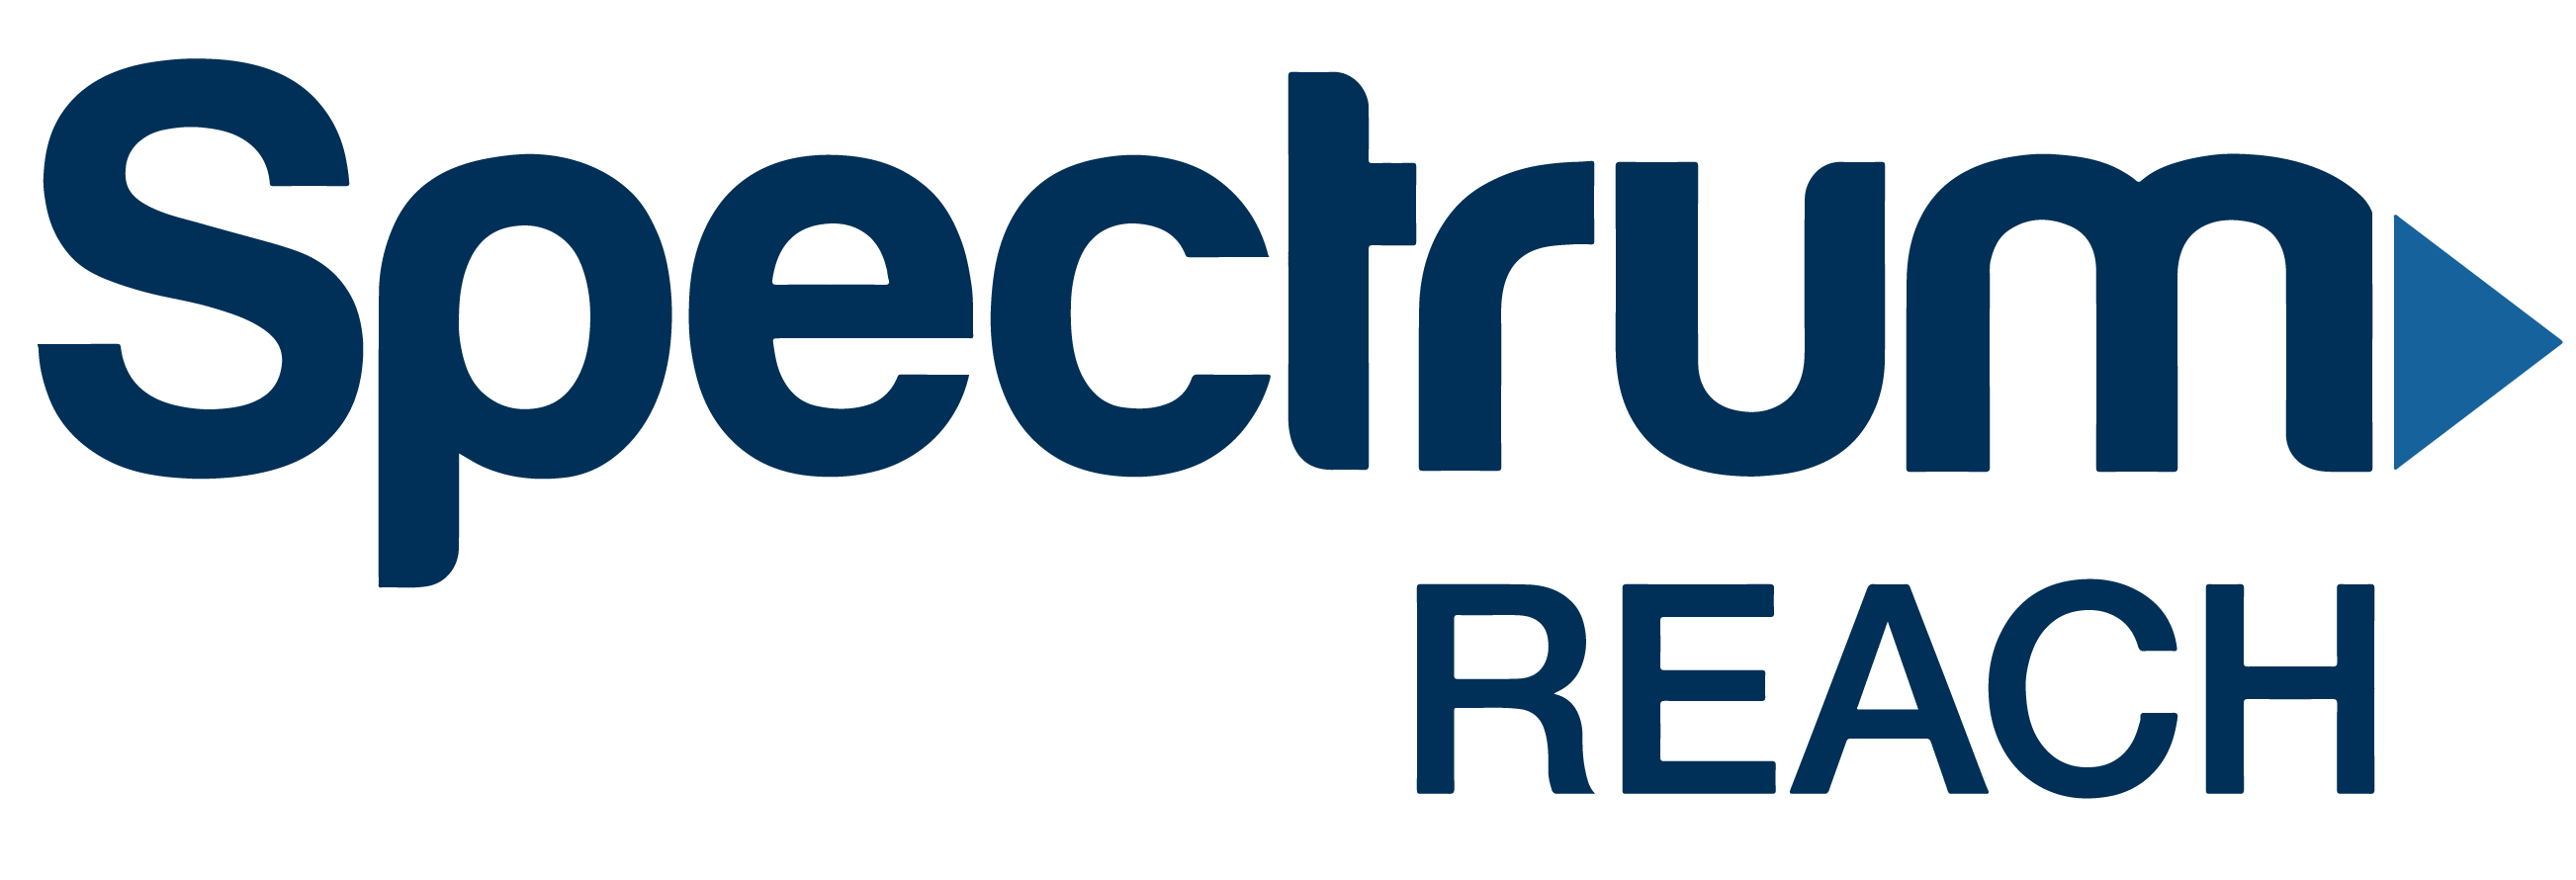 https://www.spectrumreach.com/